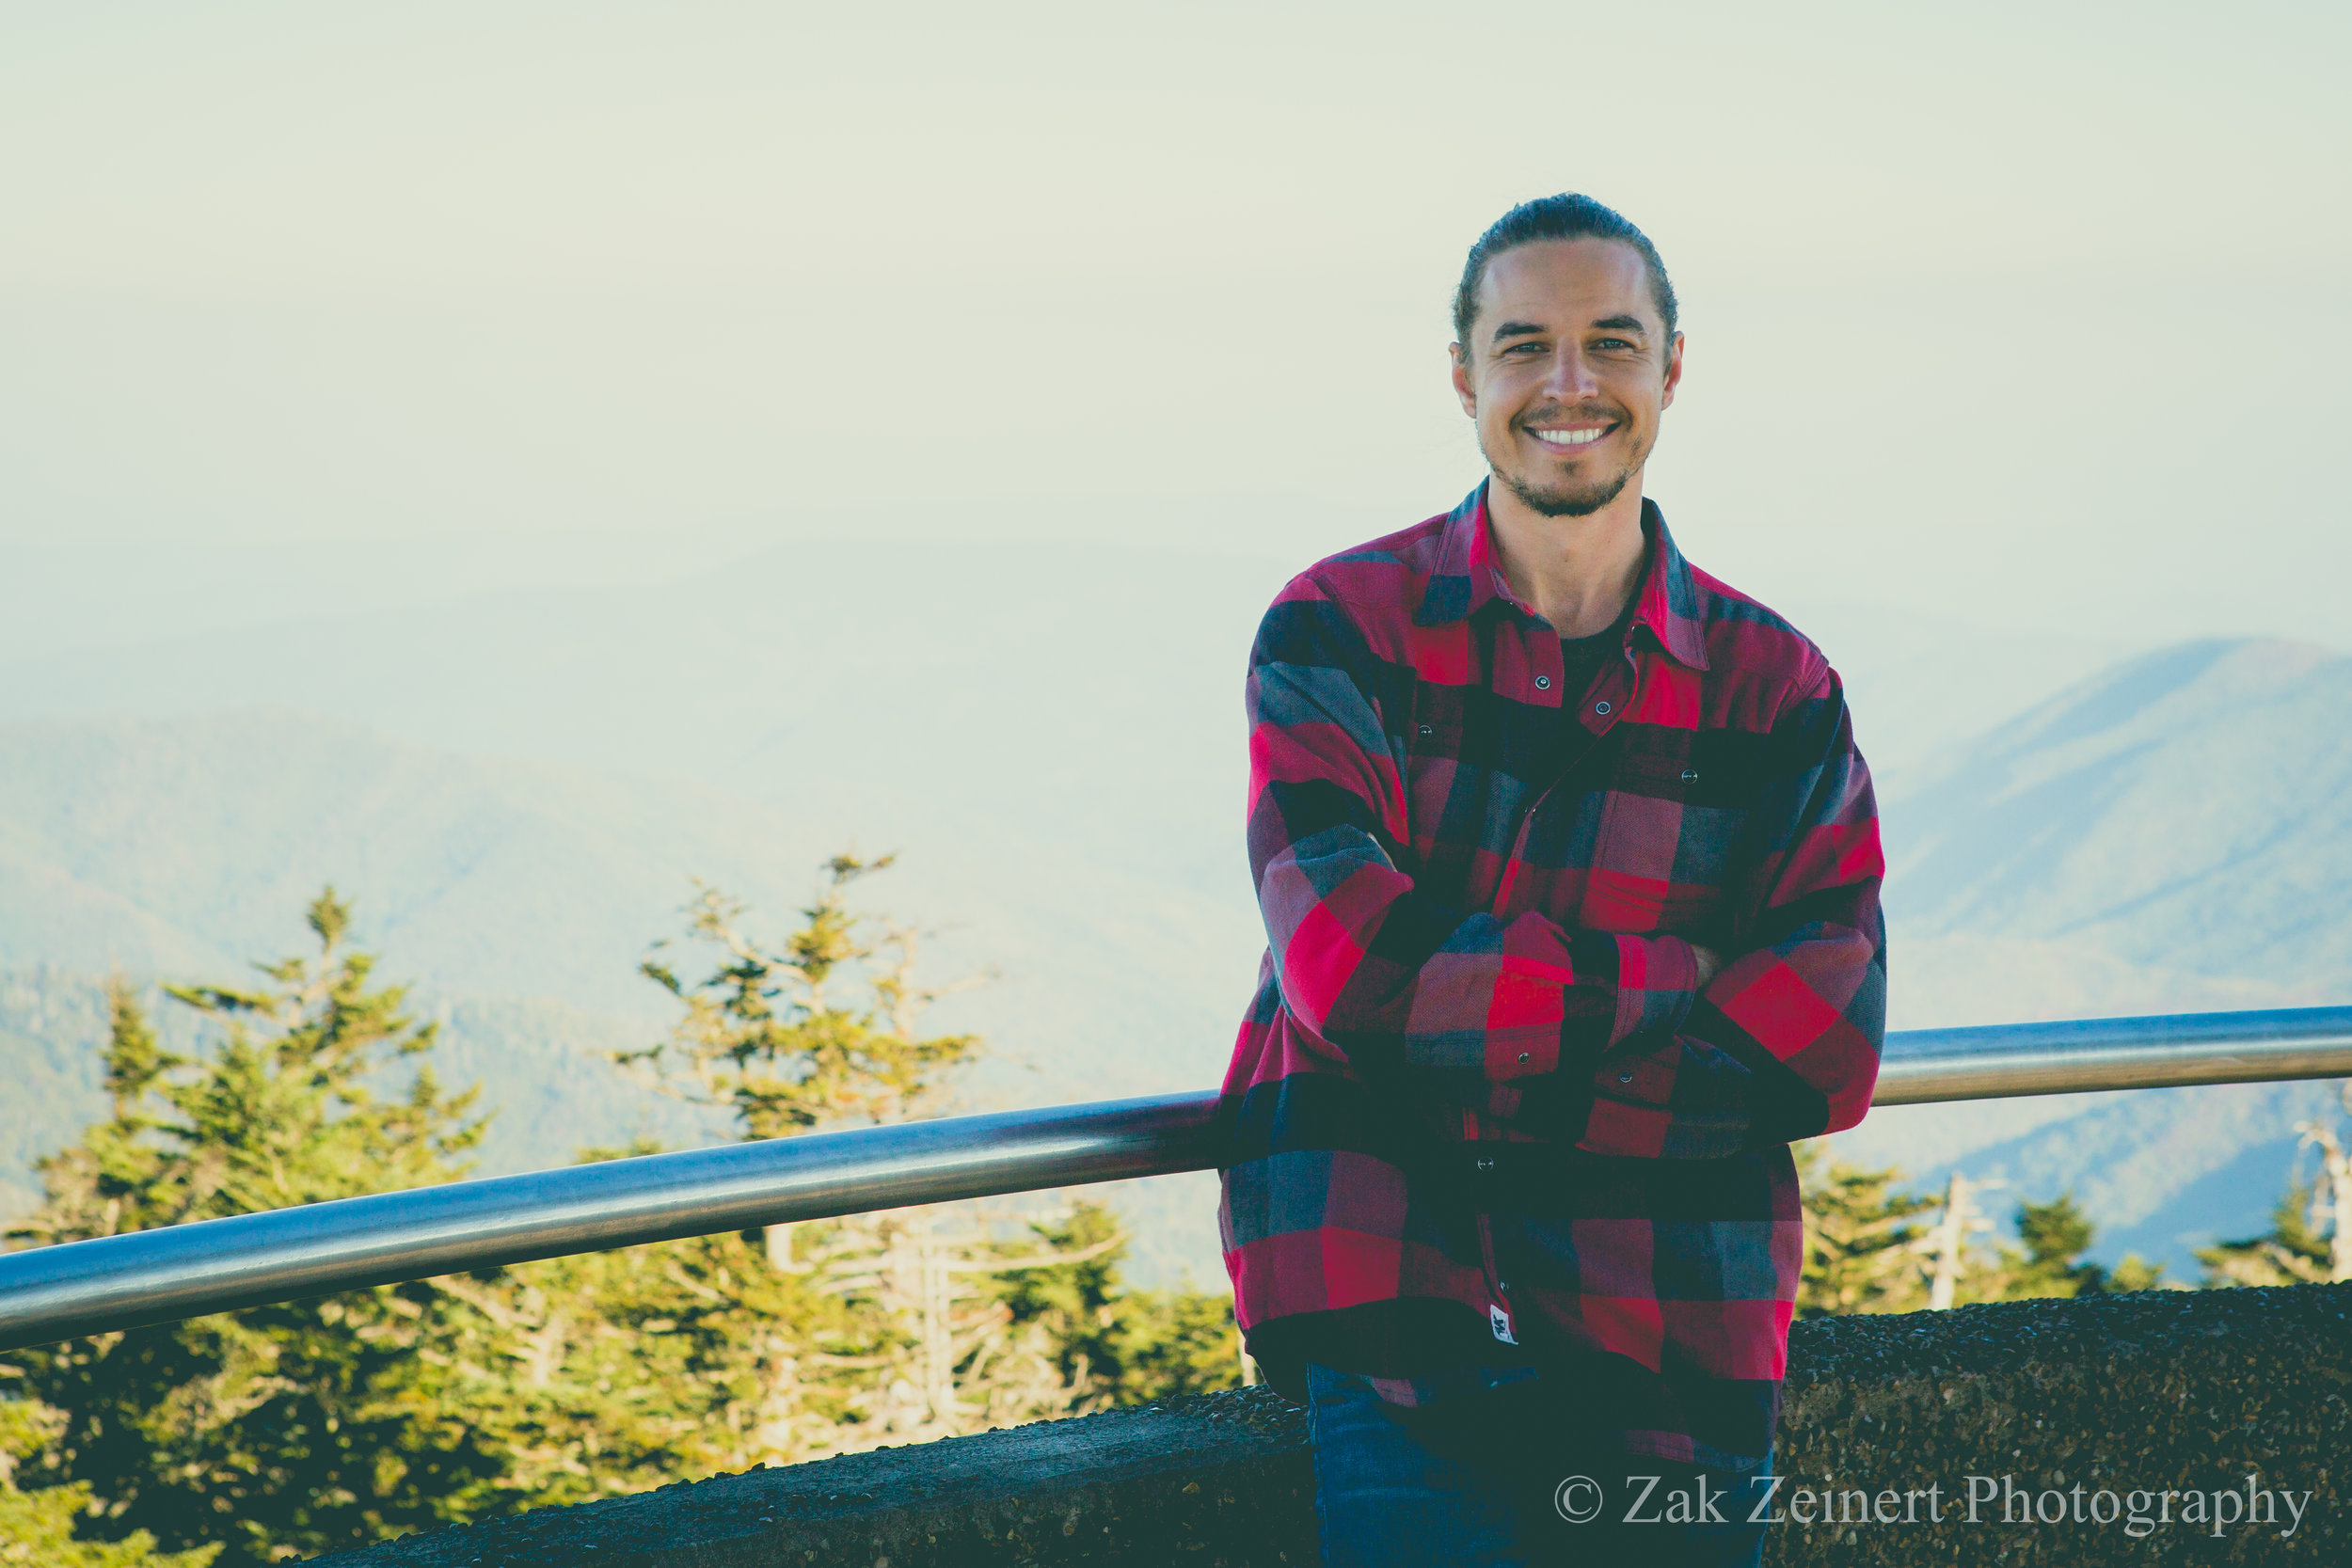 From the top of Clingman's Dome on a clear day